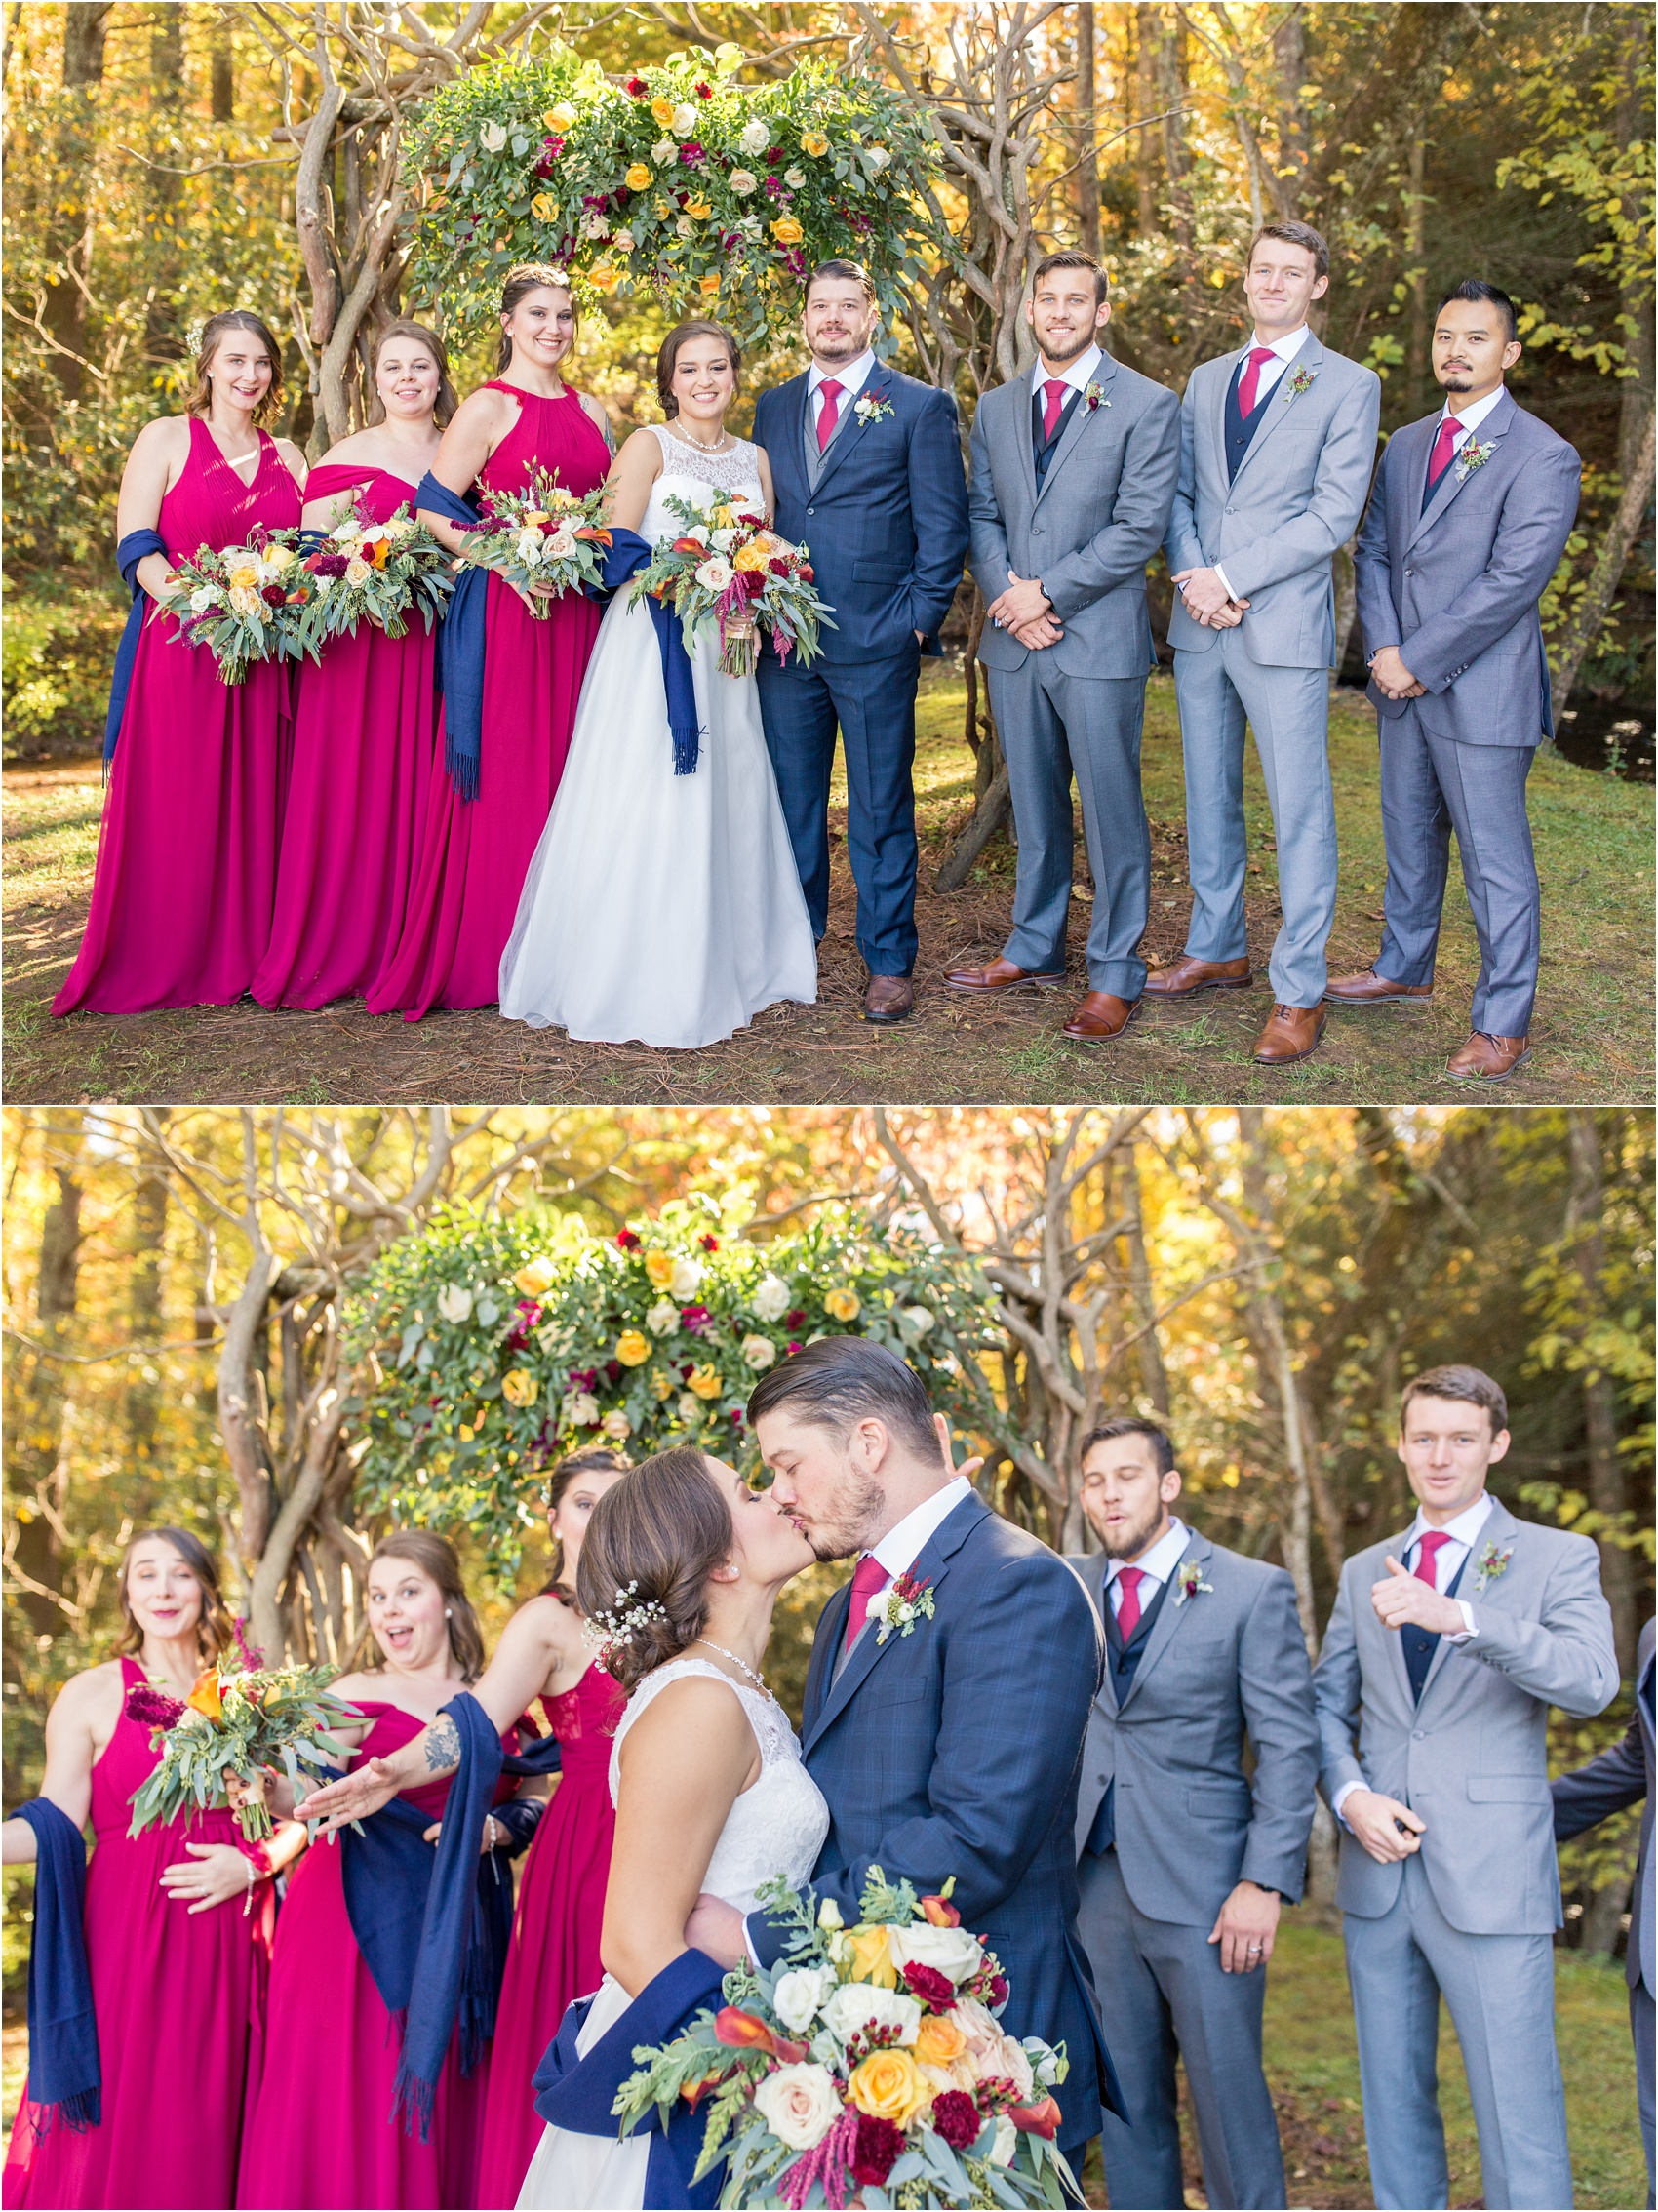 Savannah Eve Photography- McGeary-Epp Wedding- Sneak Peek-49.jpg